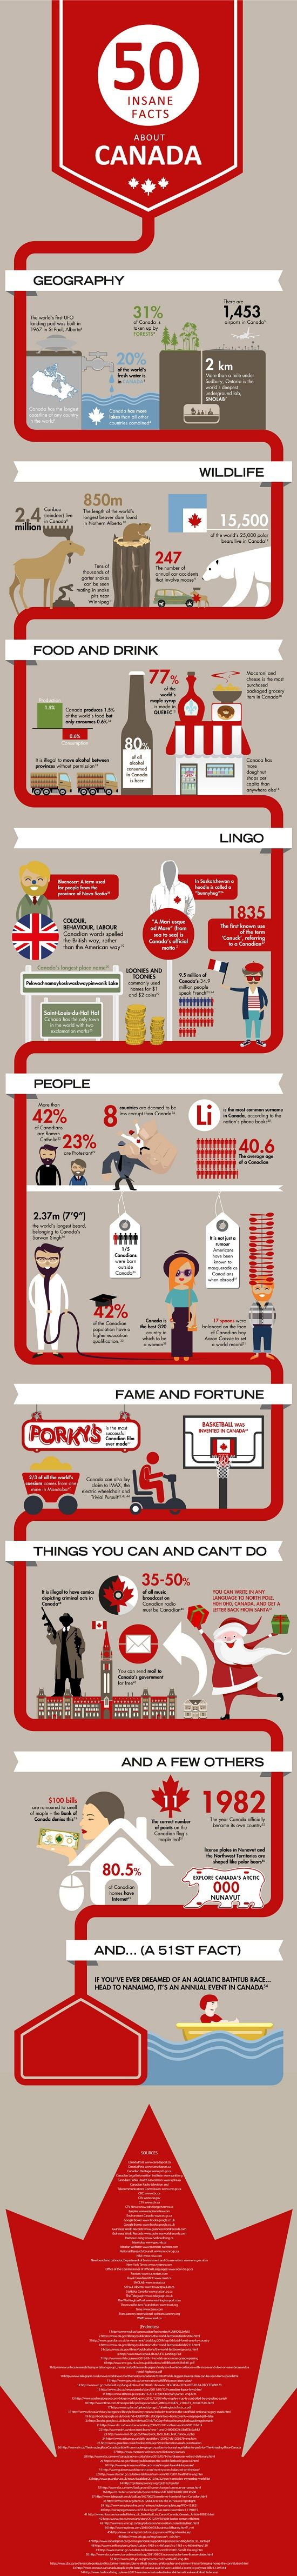 [Infographic] 50 Insane Facts about Canada